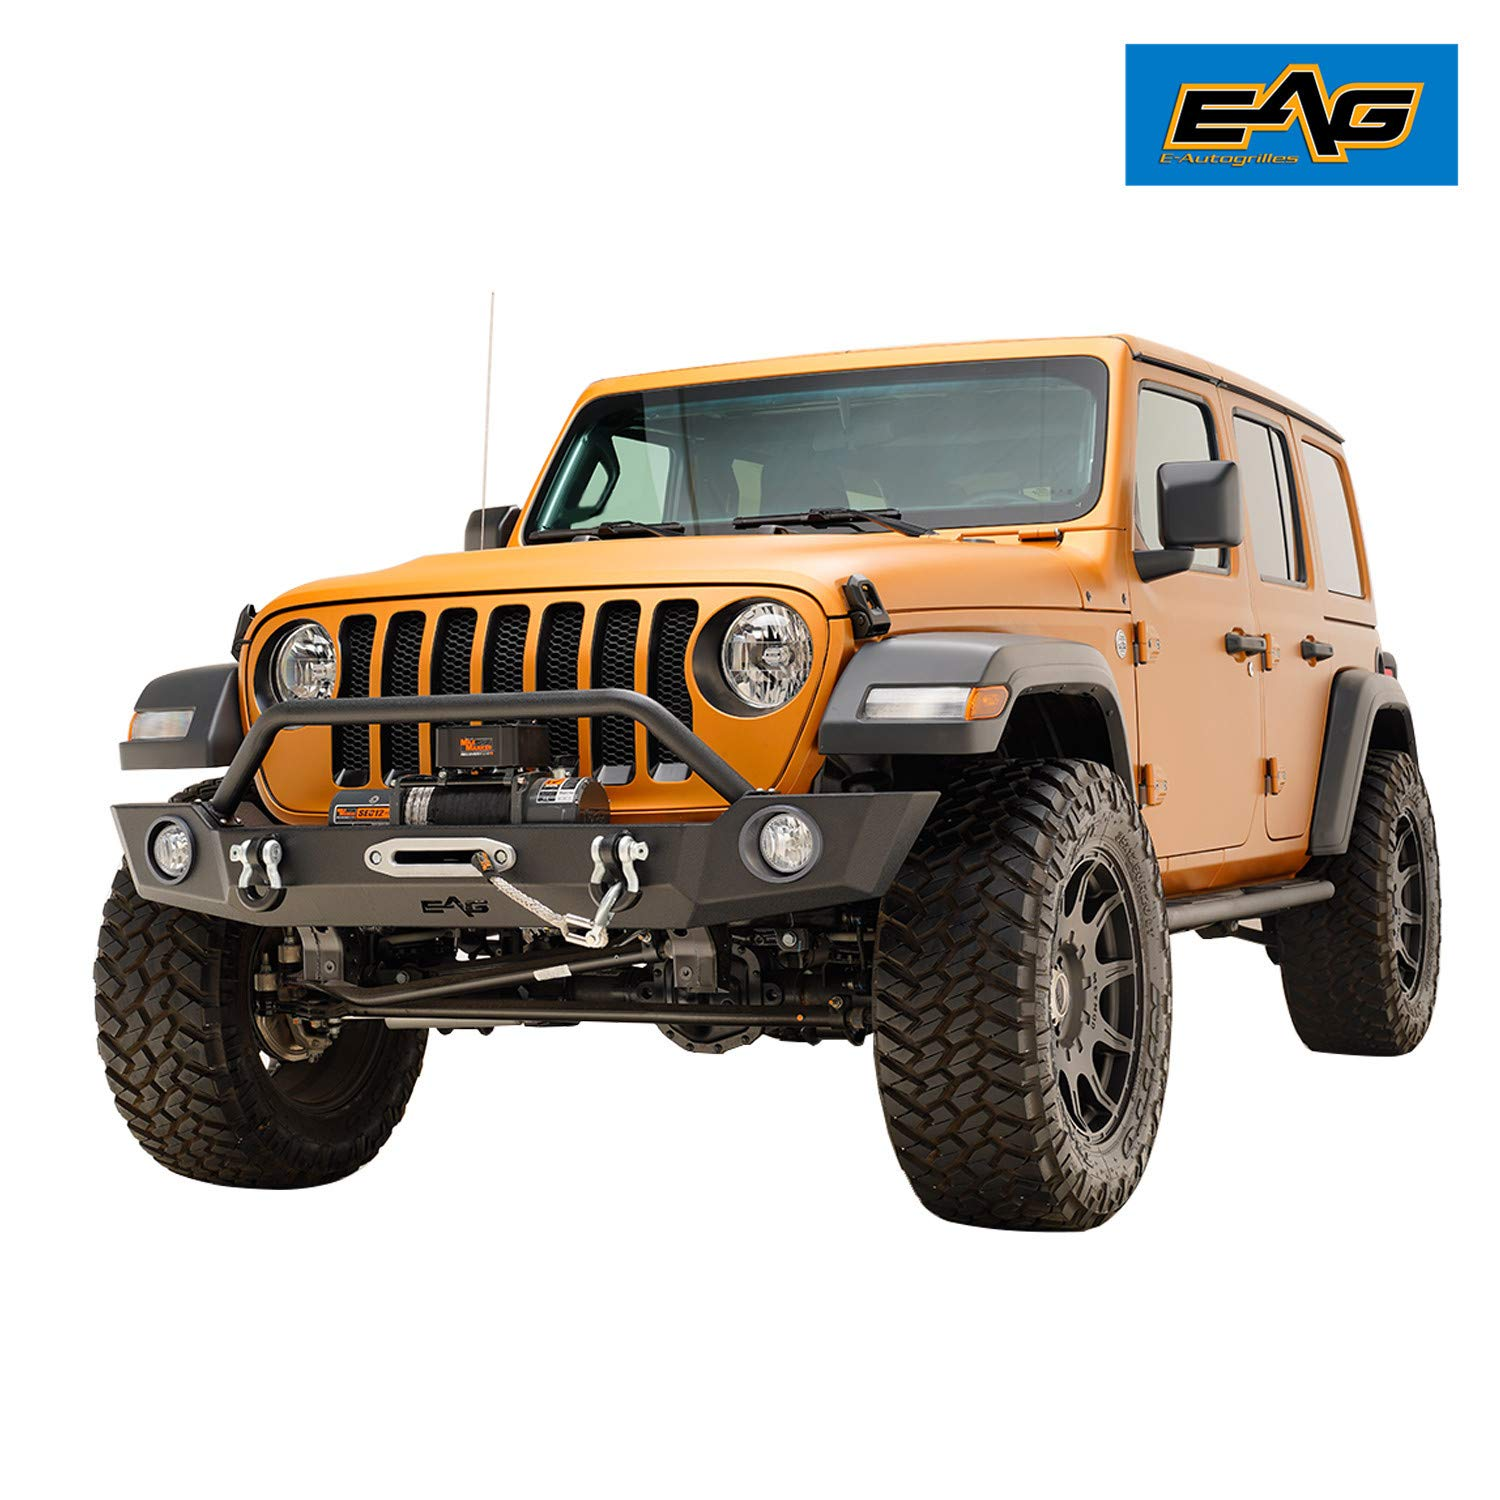 EAG Full Width Front Bumper Offroad with Fog Light Housing Fit for 18-19 Jeep Wrangler JL